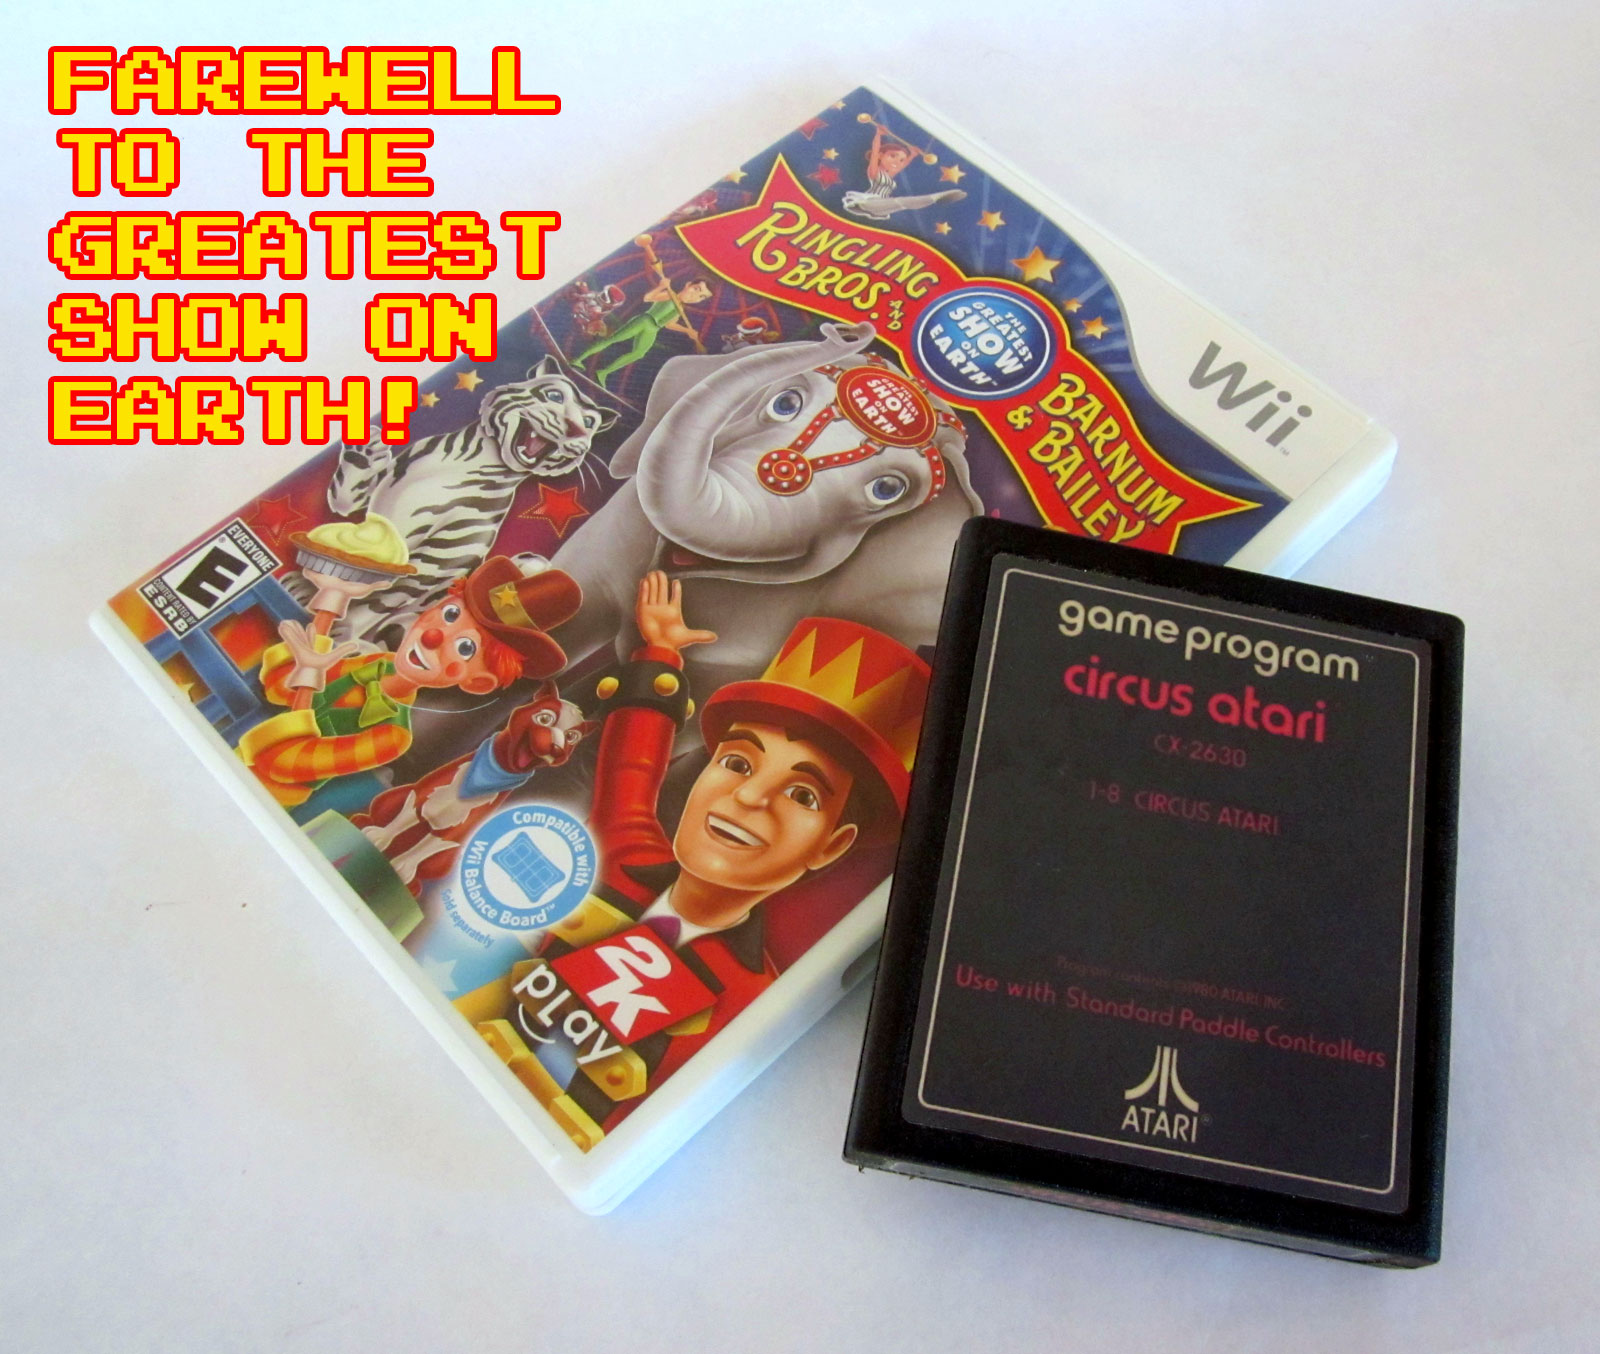 Ringling Bros. and Barnum & Bailey video game